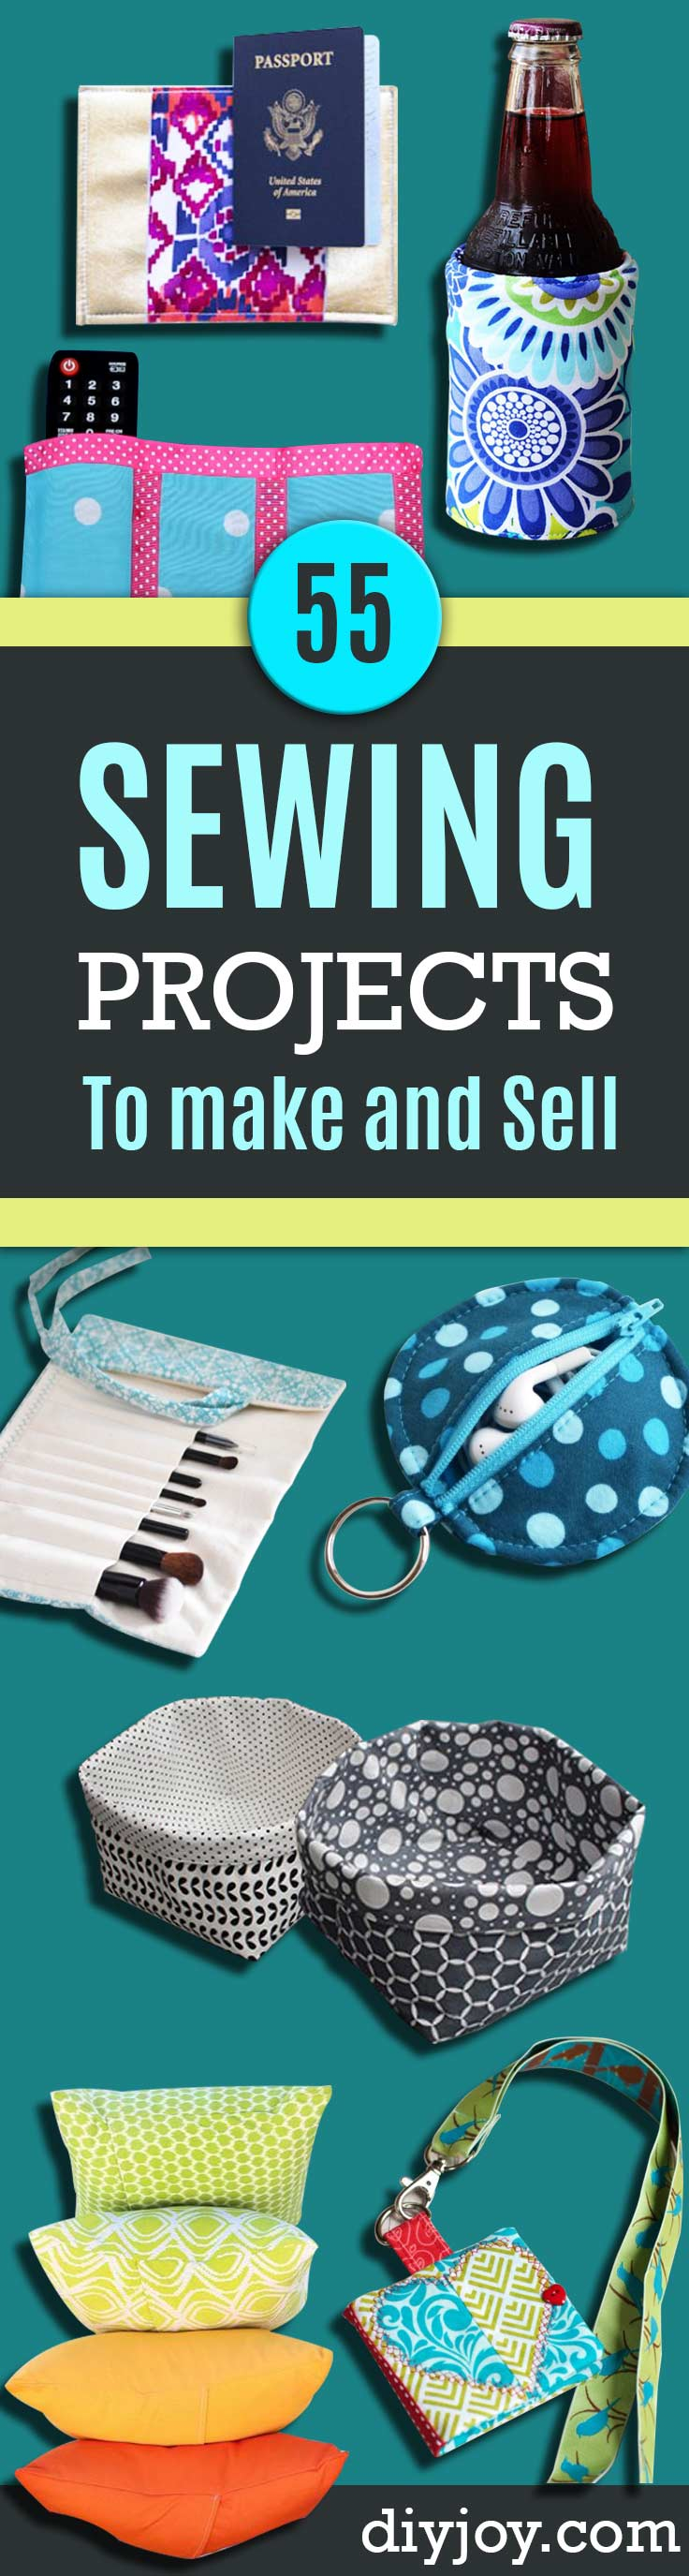 55 sewing projects to make and sell easy sewing projects to sell diy sewing ideas for your craft business make money solutioingenieria Images